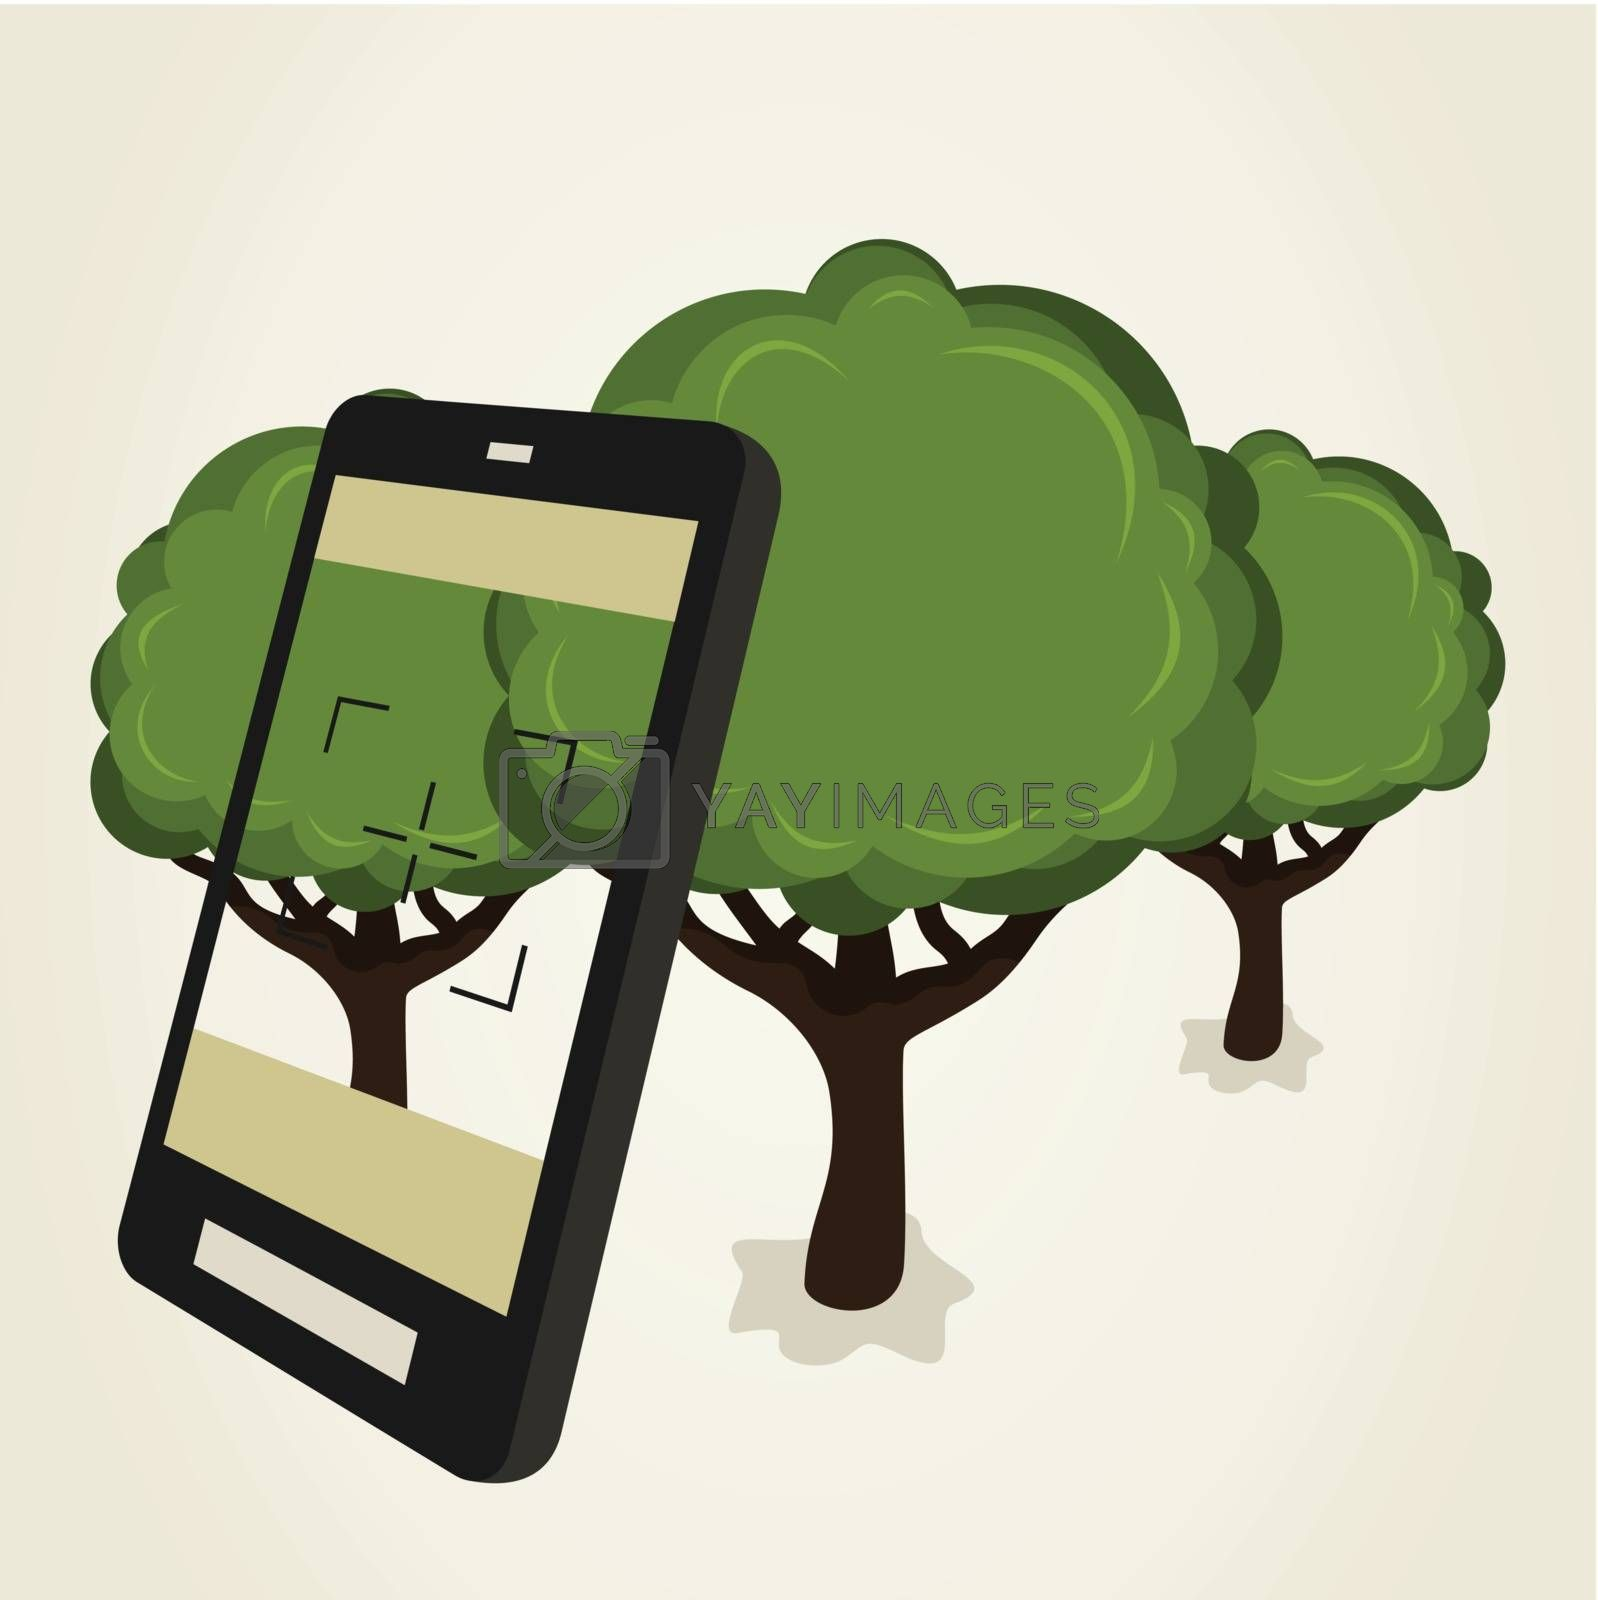 Shooting on wood phone. A vector illustration